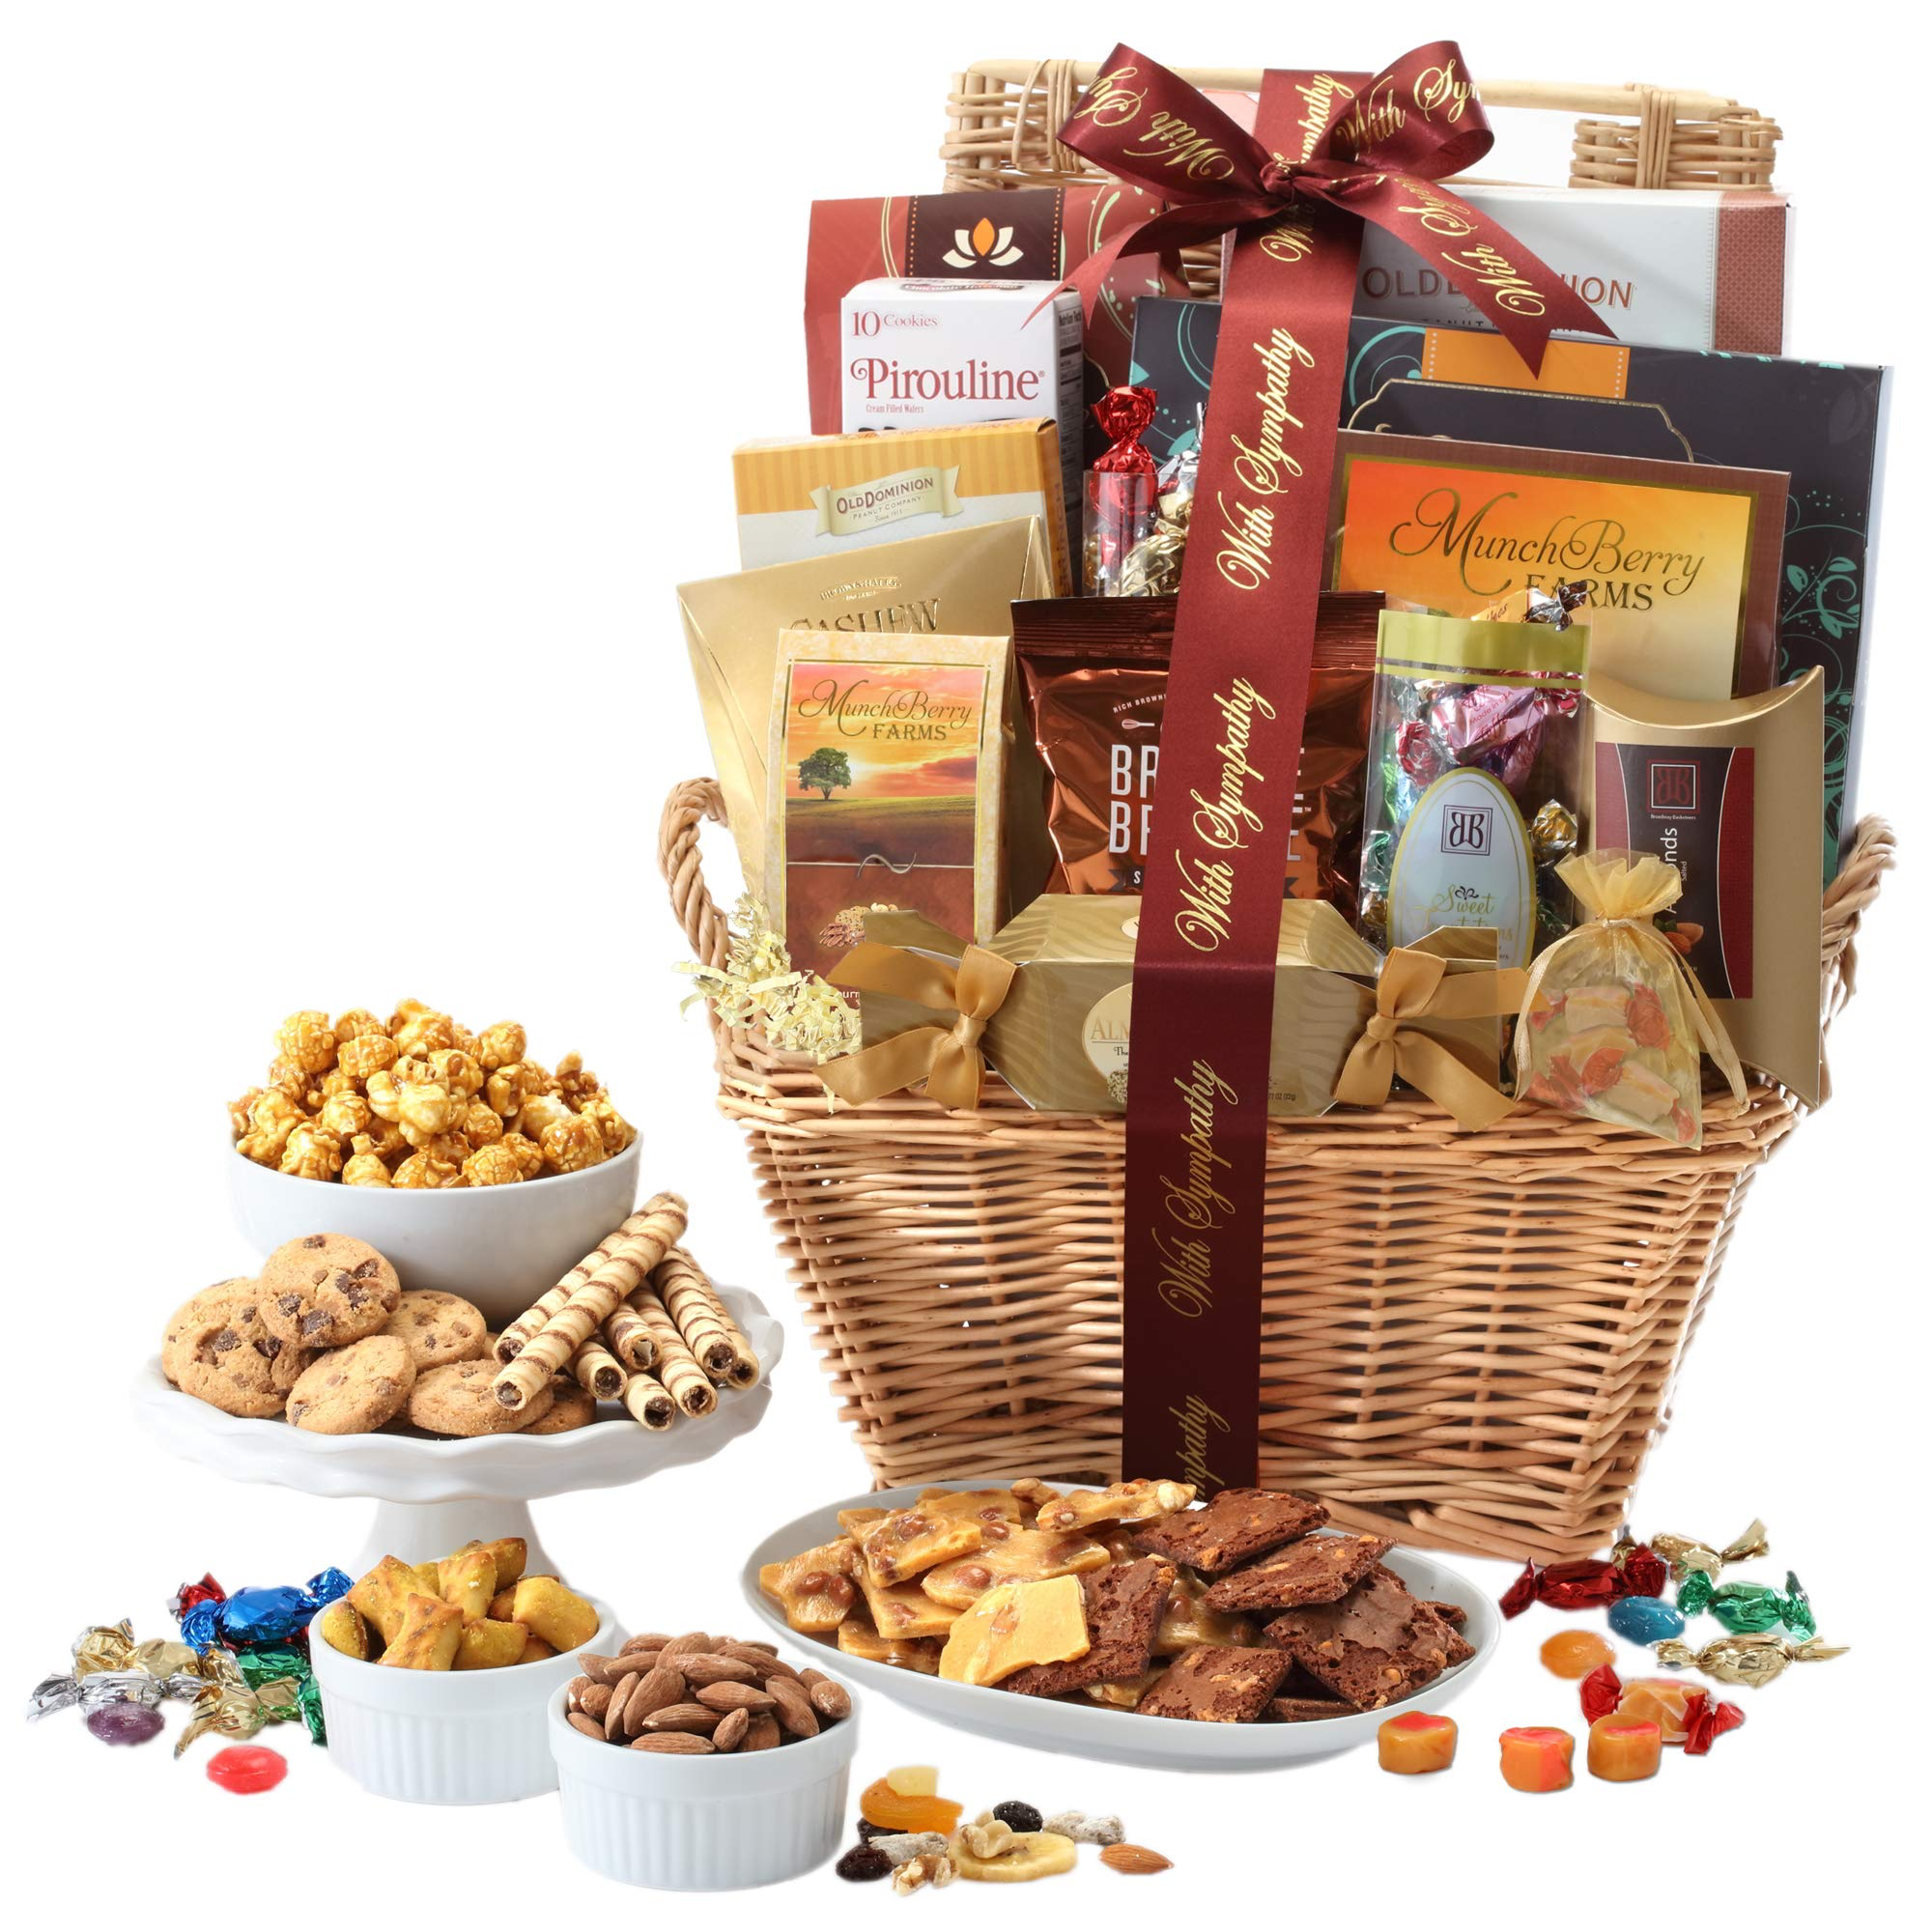 Broadway Basketeers With Sympathy Gift Basket Deluxe with Gourmet Pastries, Seasoned Nuts & Sweets by Broadway Basketeers